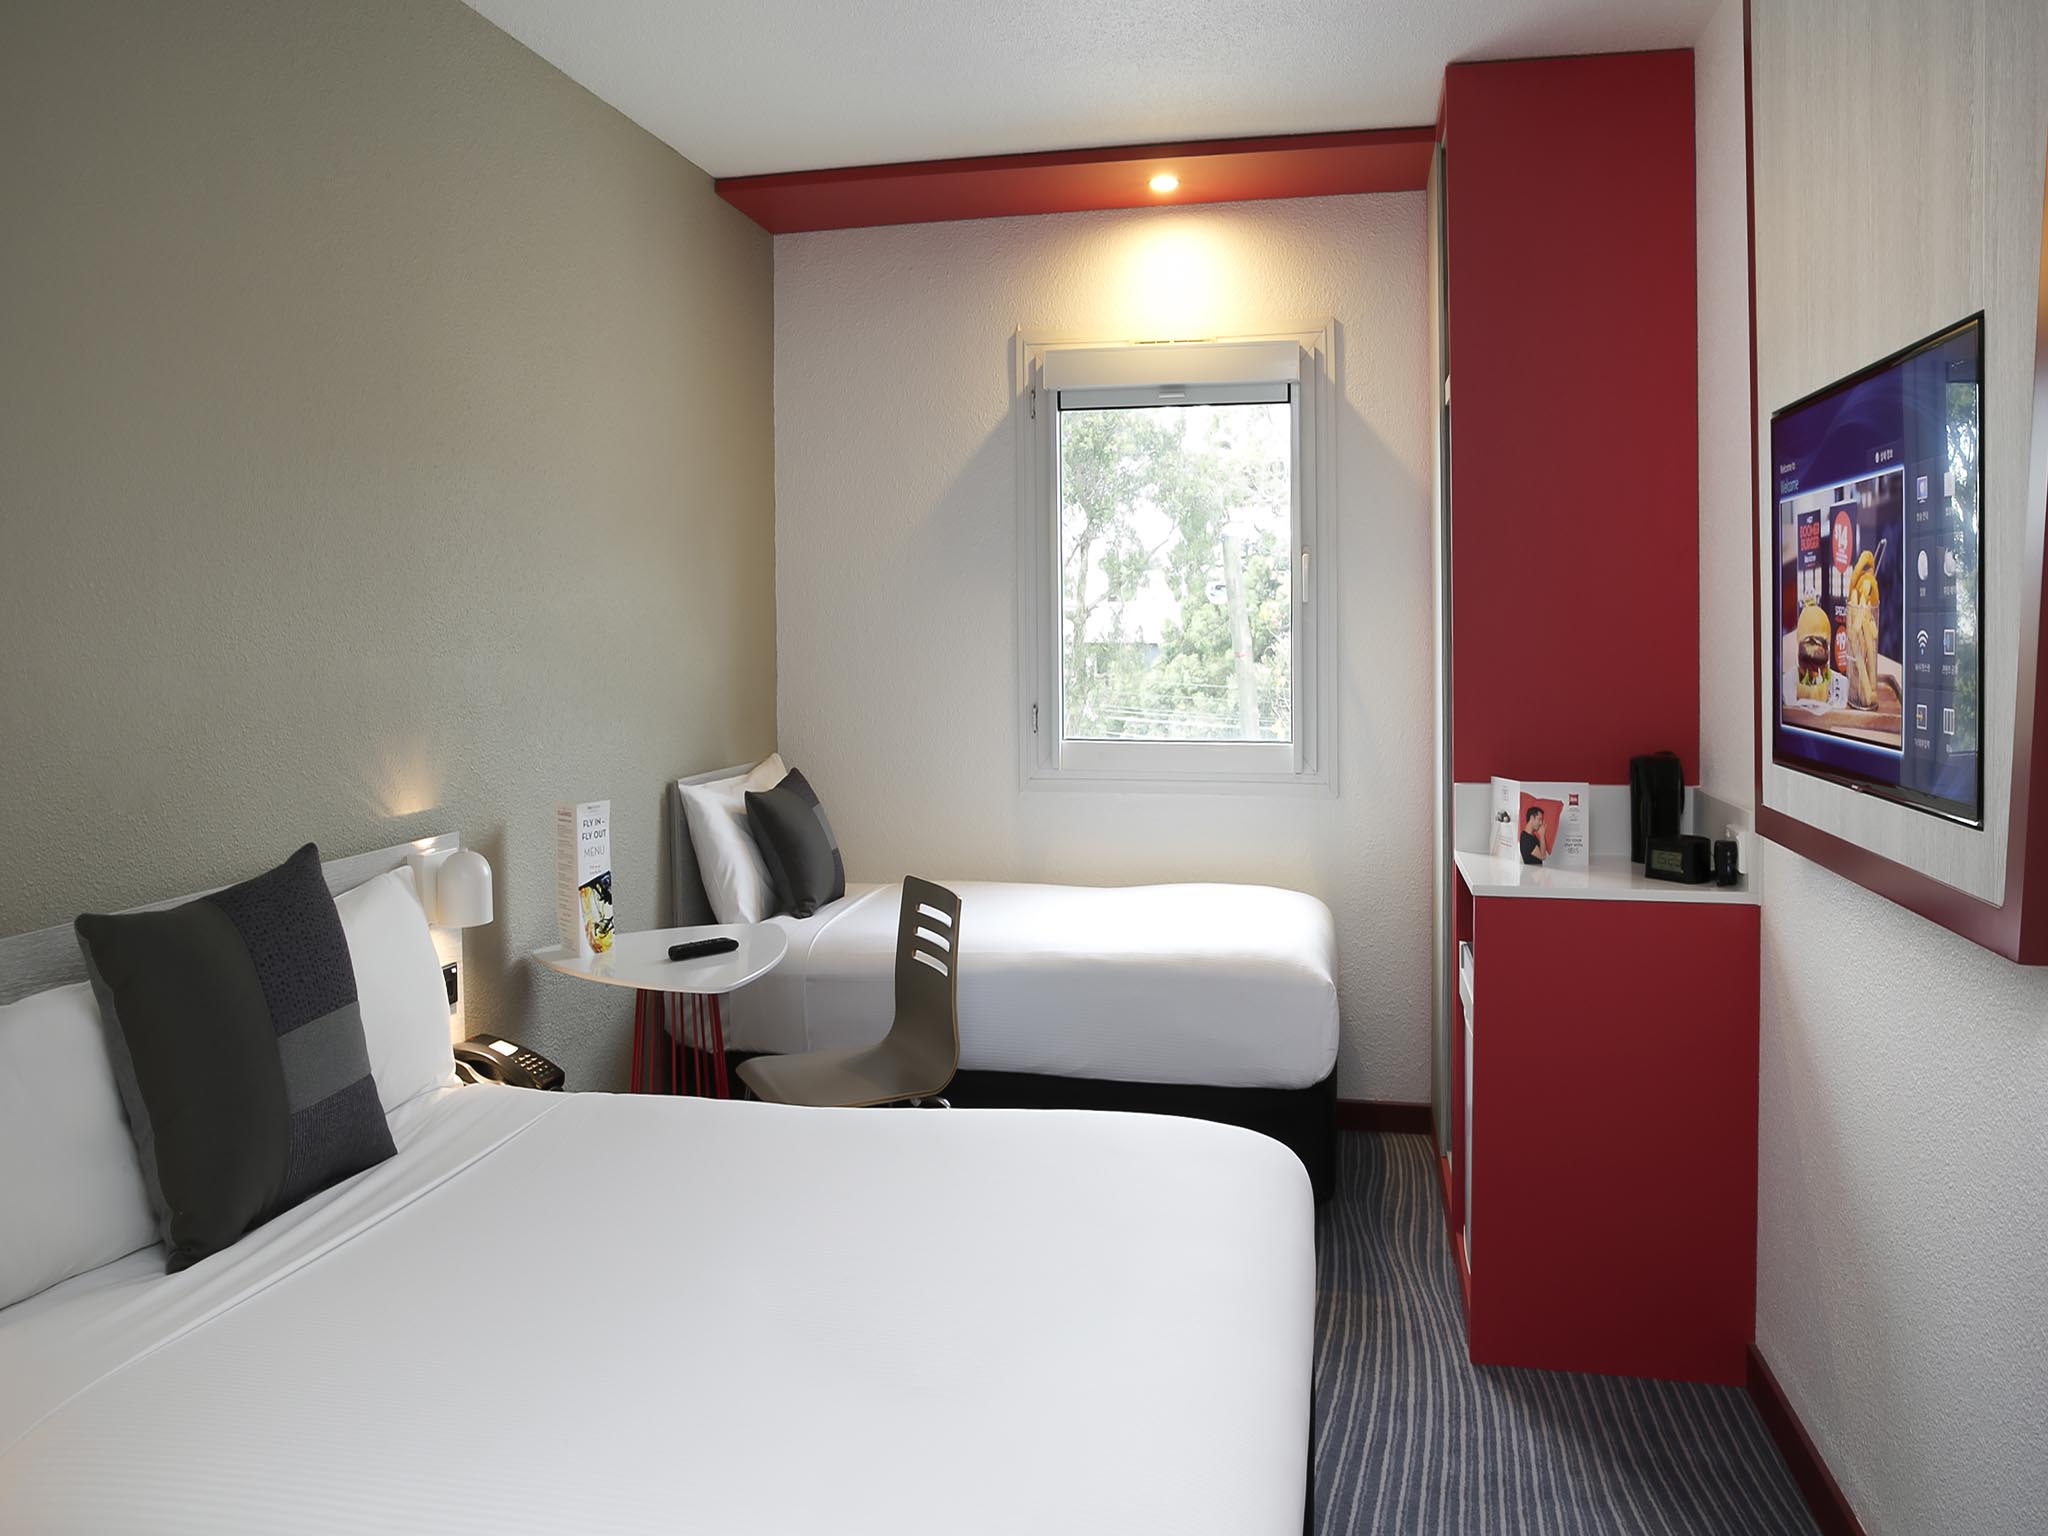 Mercure Hotel Sydney Airport Ibis Sydney Airport Accorhotels